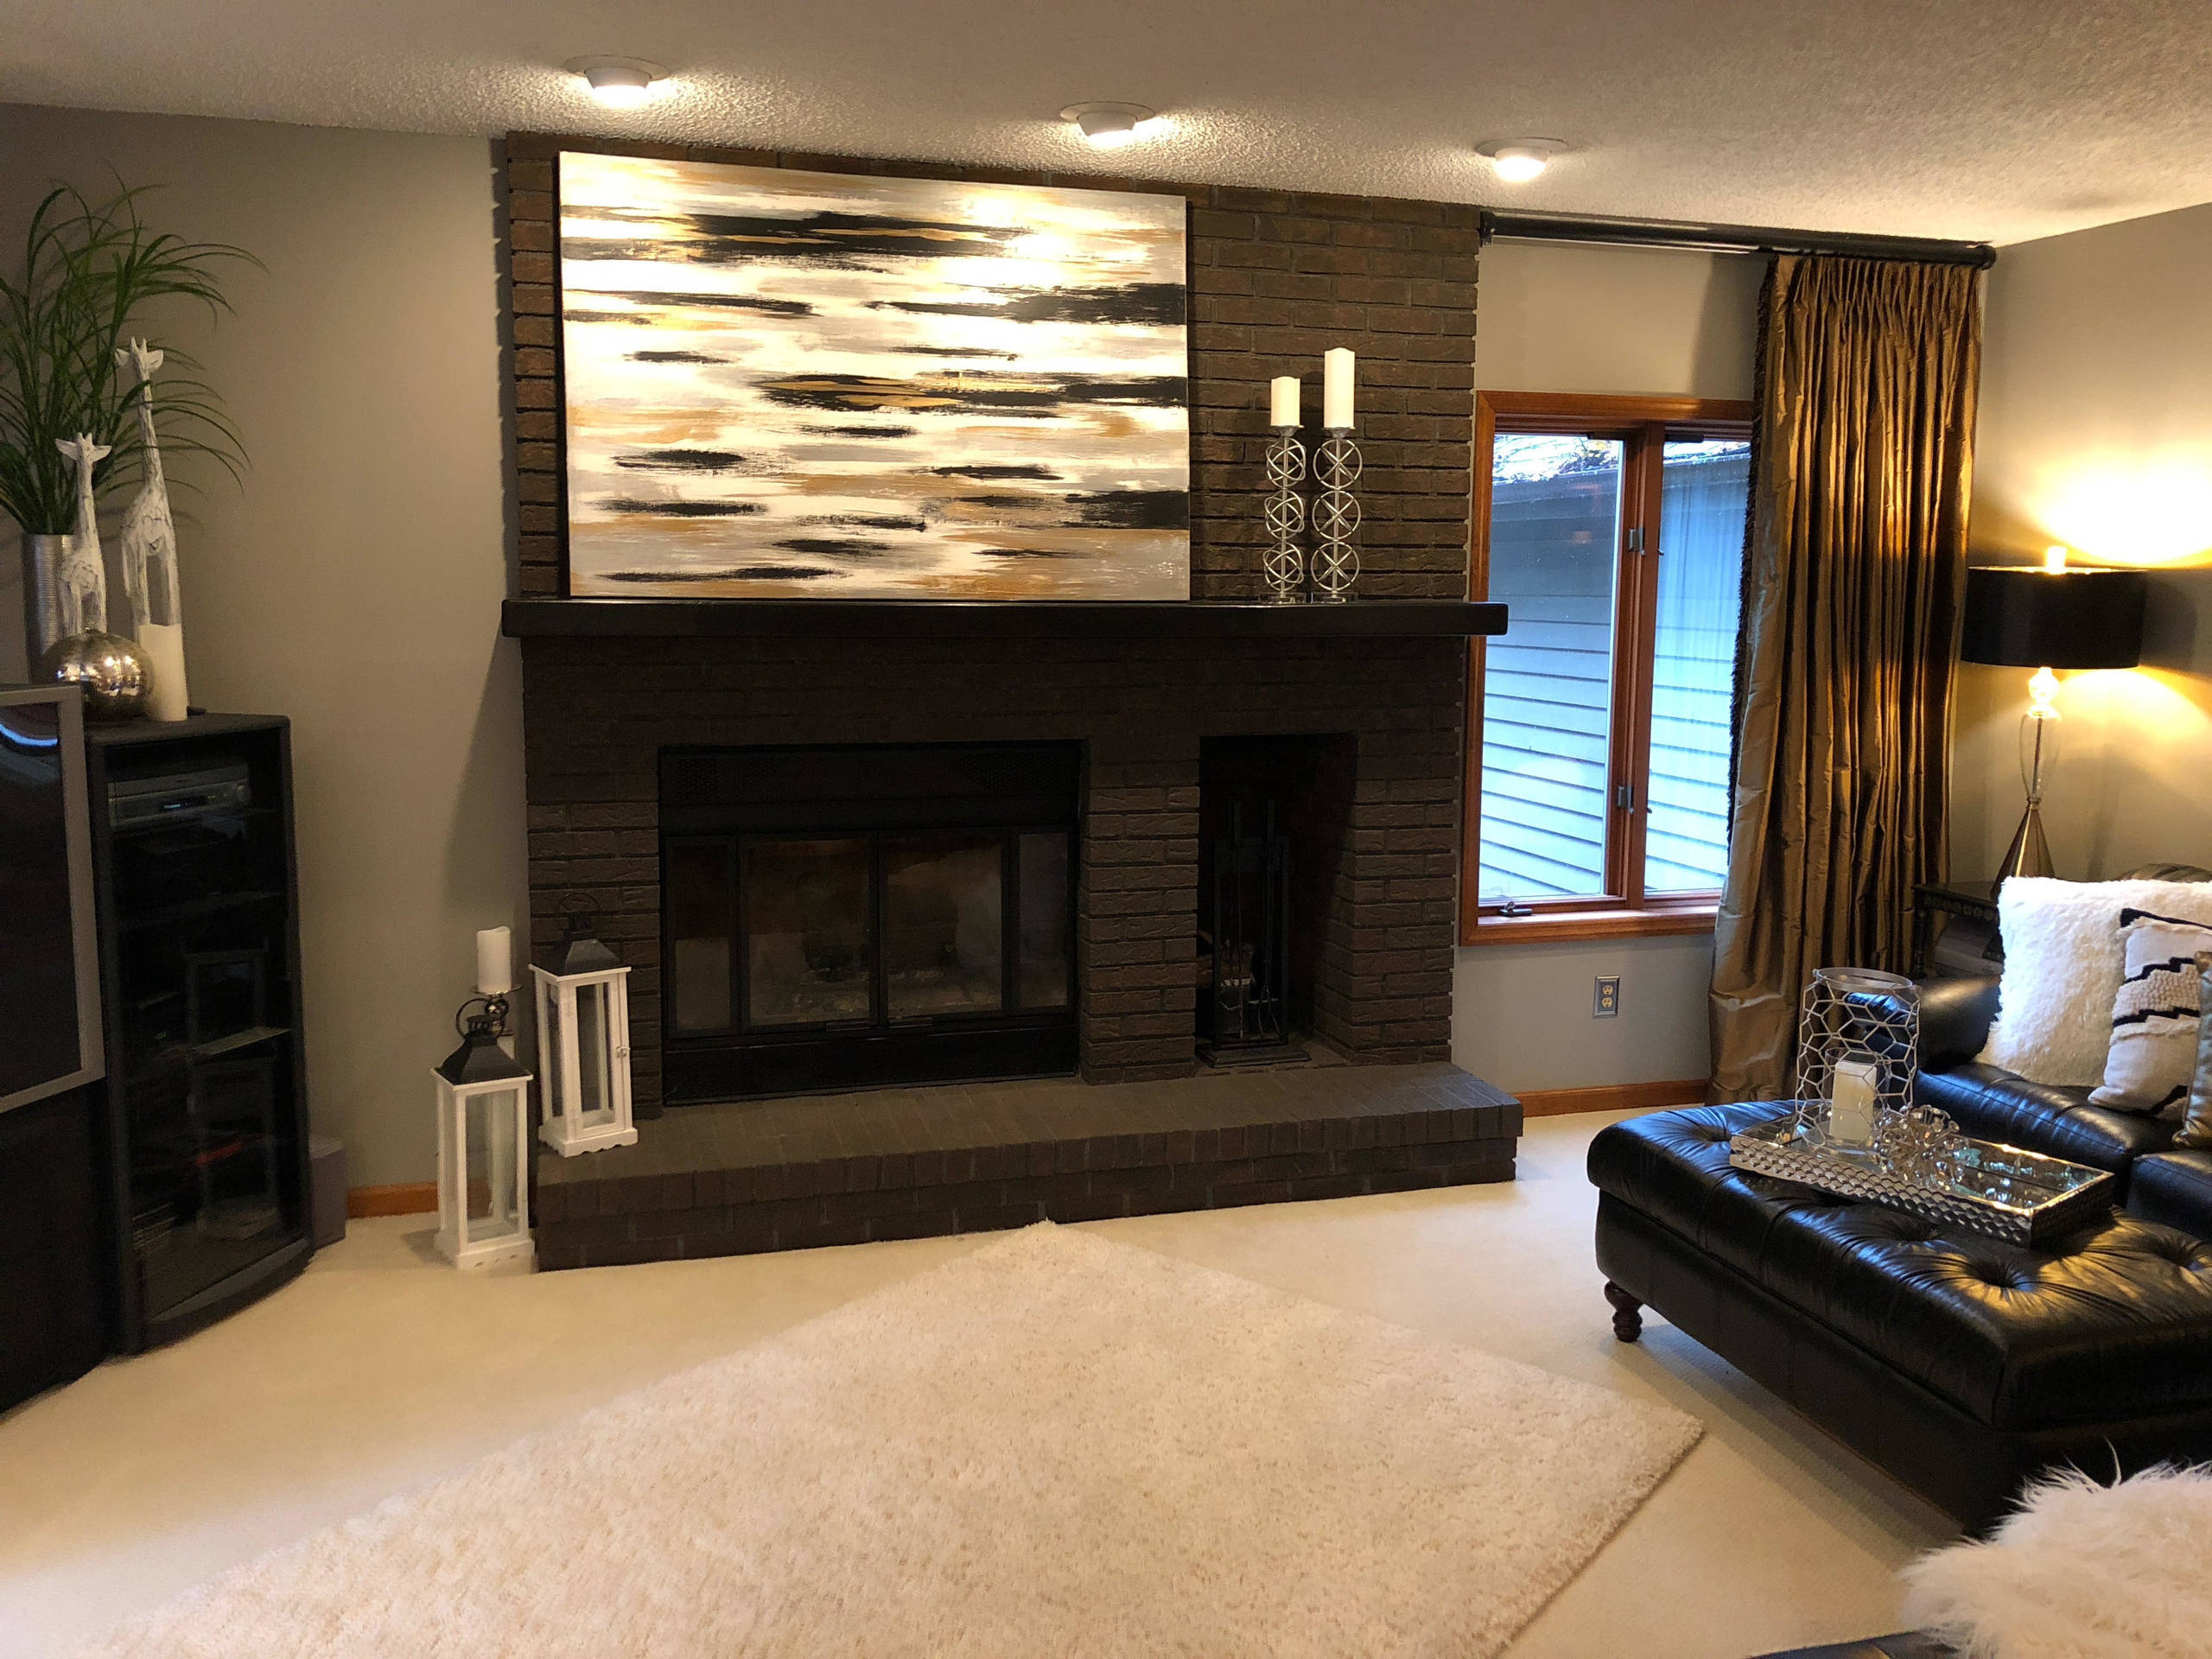 Classic to Sophisticated Full Home Makeover